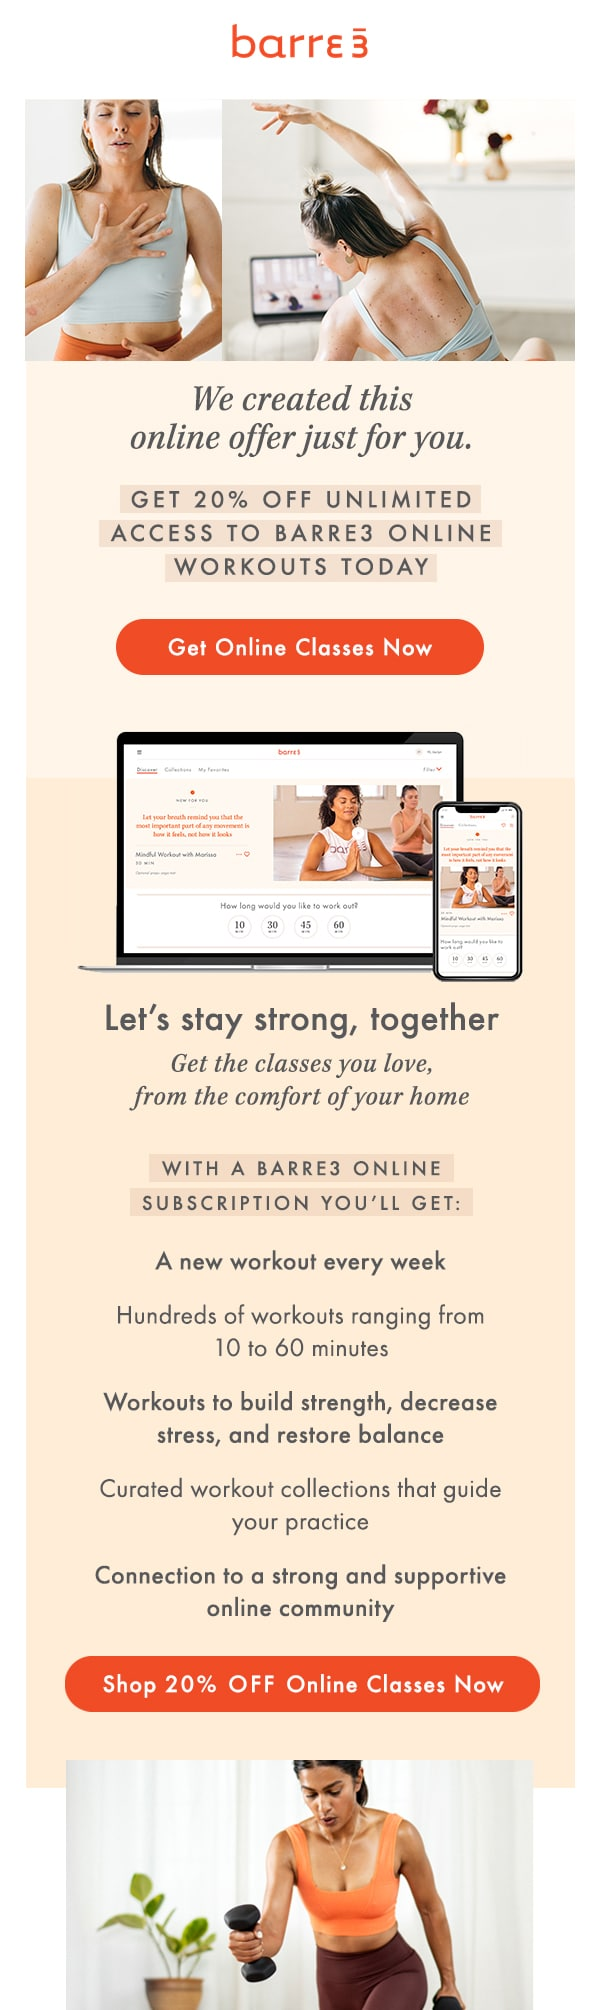 barre3 sent this email out to inform their audience of new online classes while locations were closed